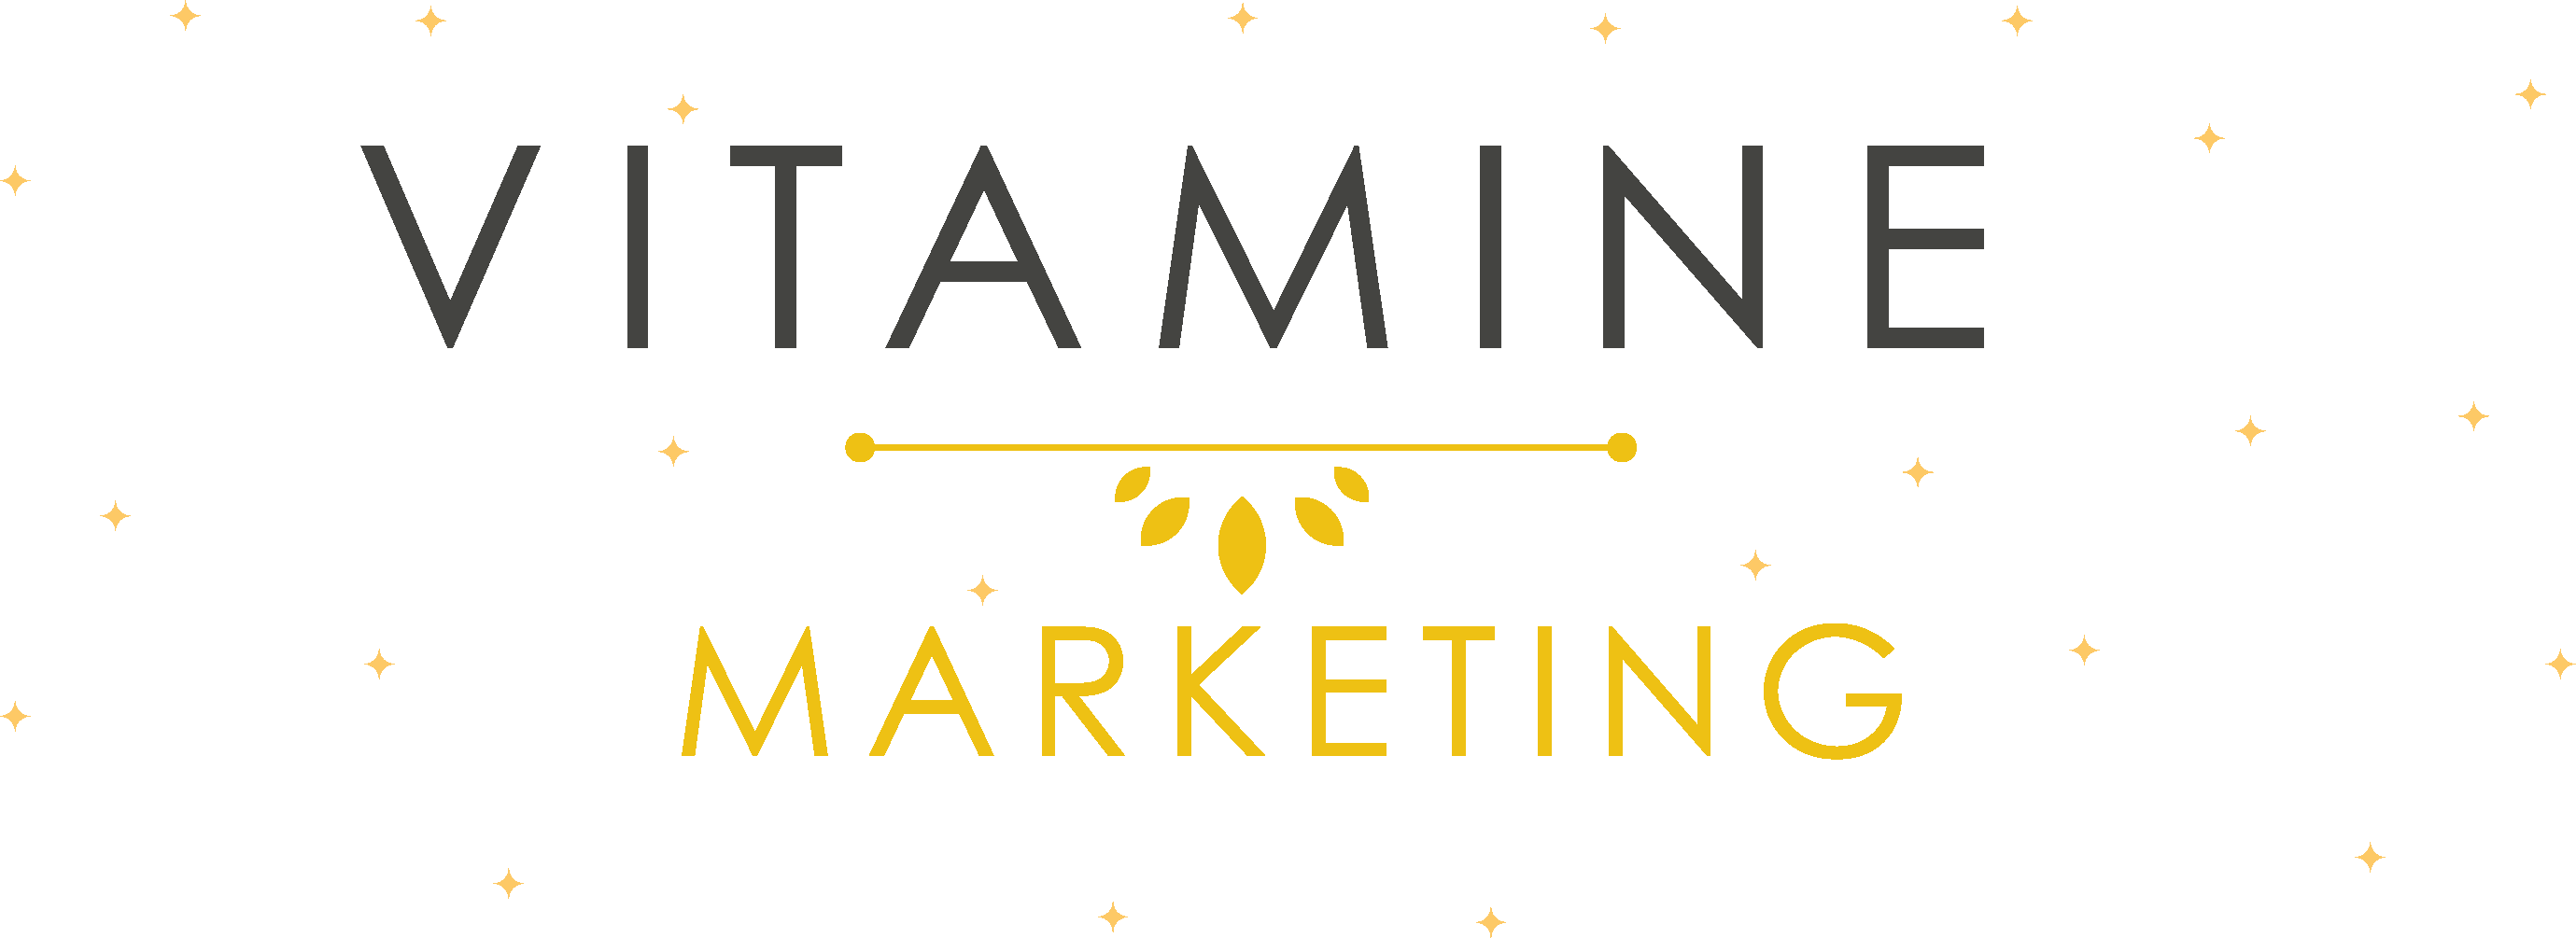 VITAMINE MARKETING